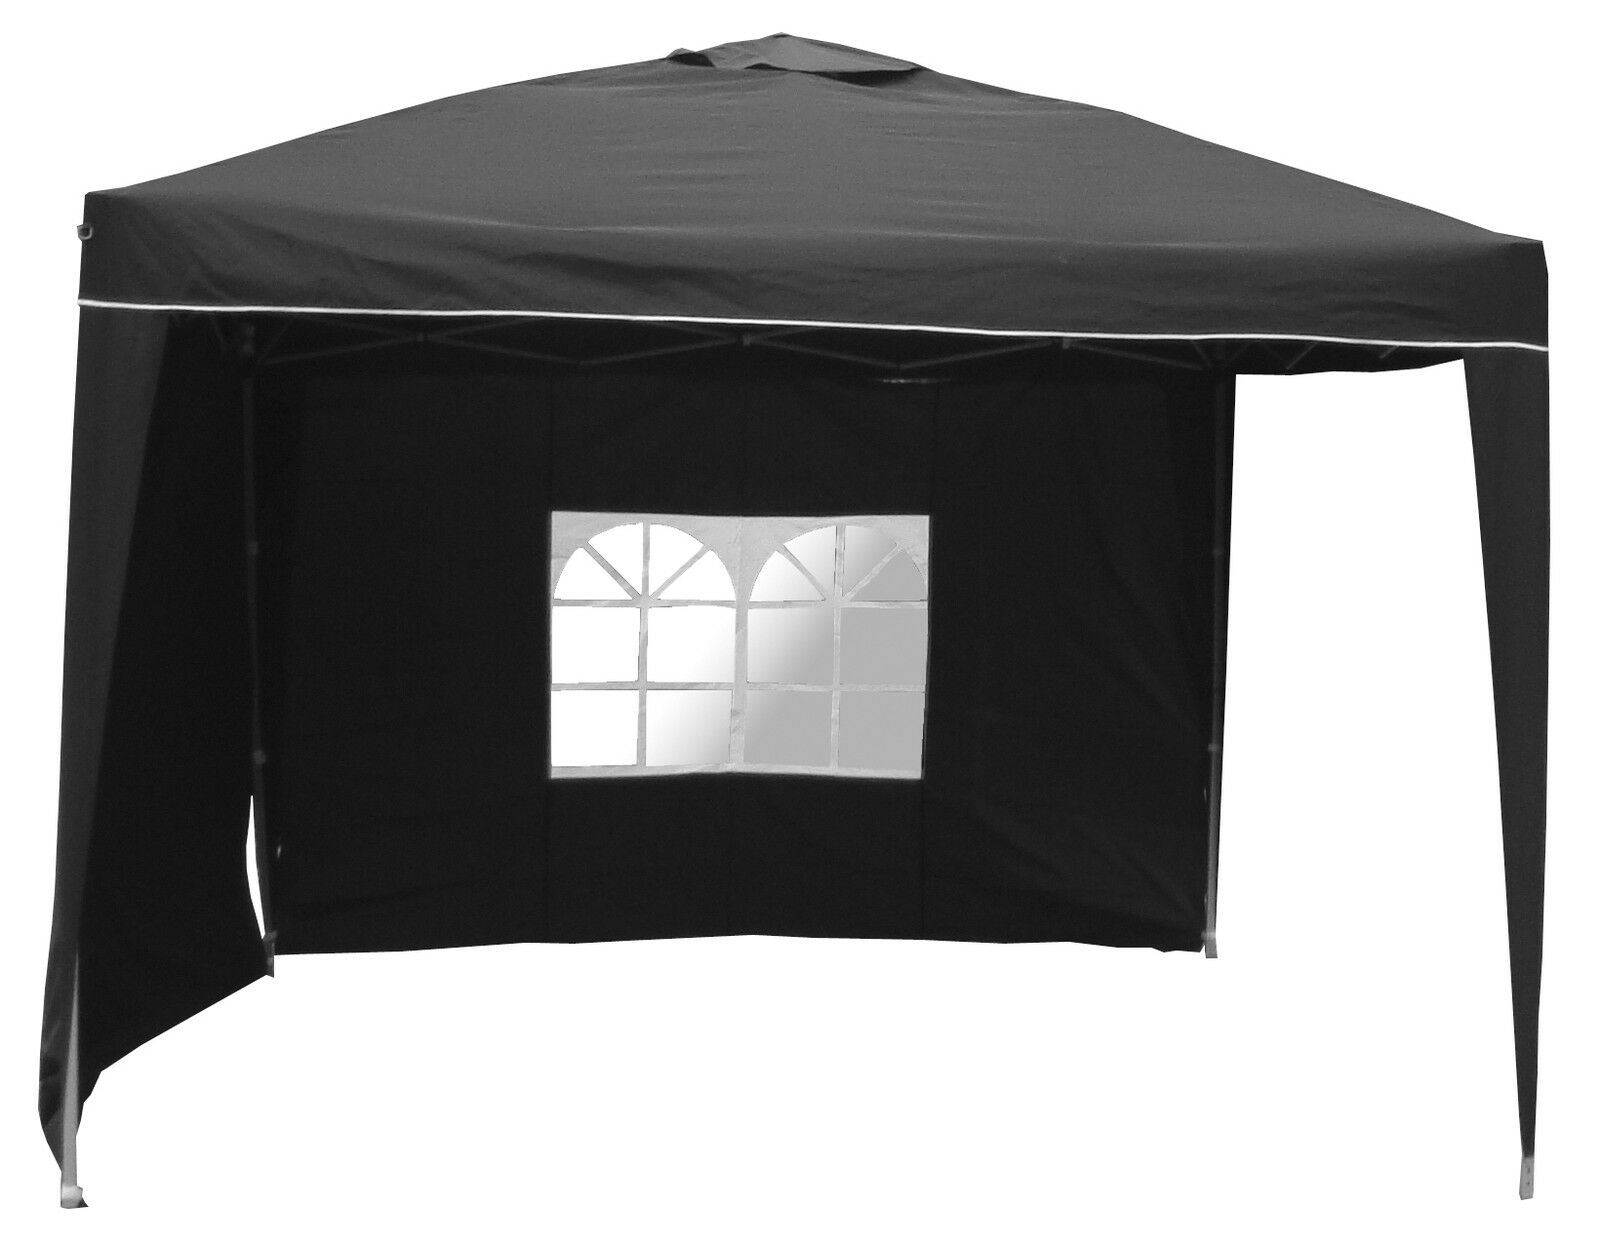 faltpavillon wasserdicht alu pavillon schwarz 3x3 gartenpavillon 2 seitenteile eur 89 99. Black Bedroom Furniture Sets. Home Design Ideas